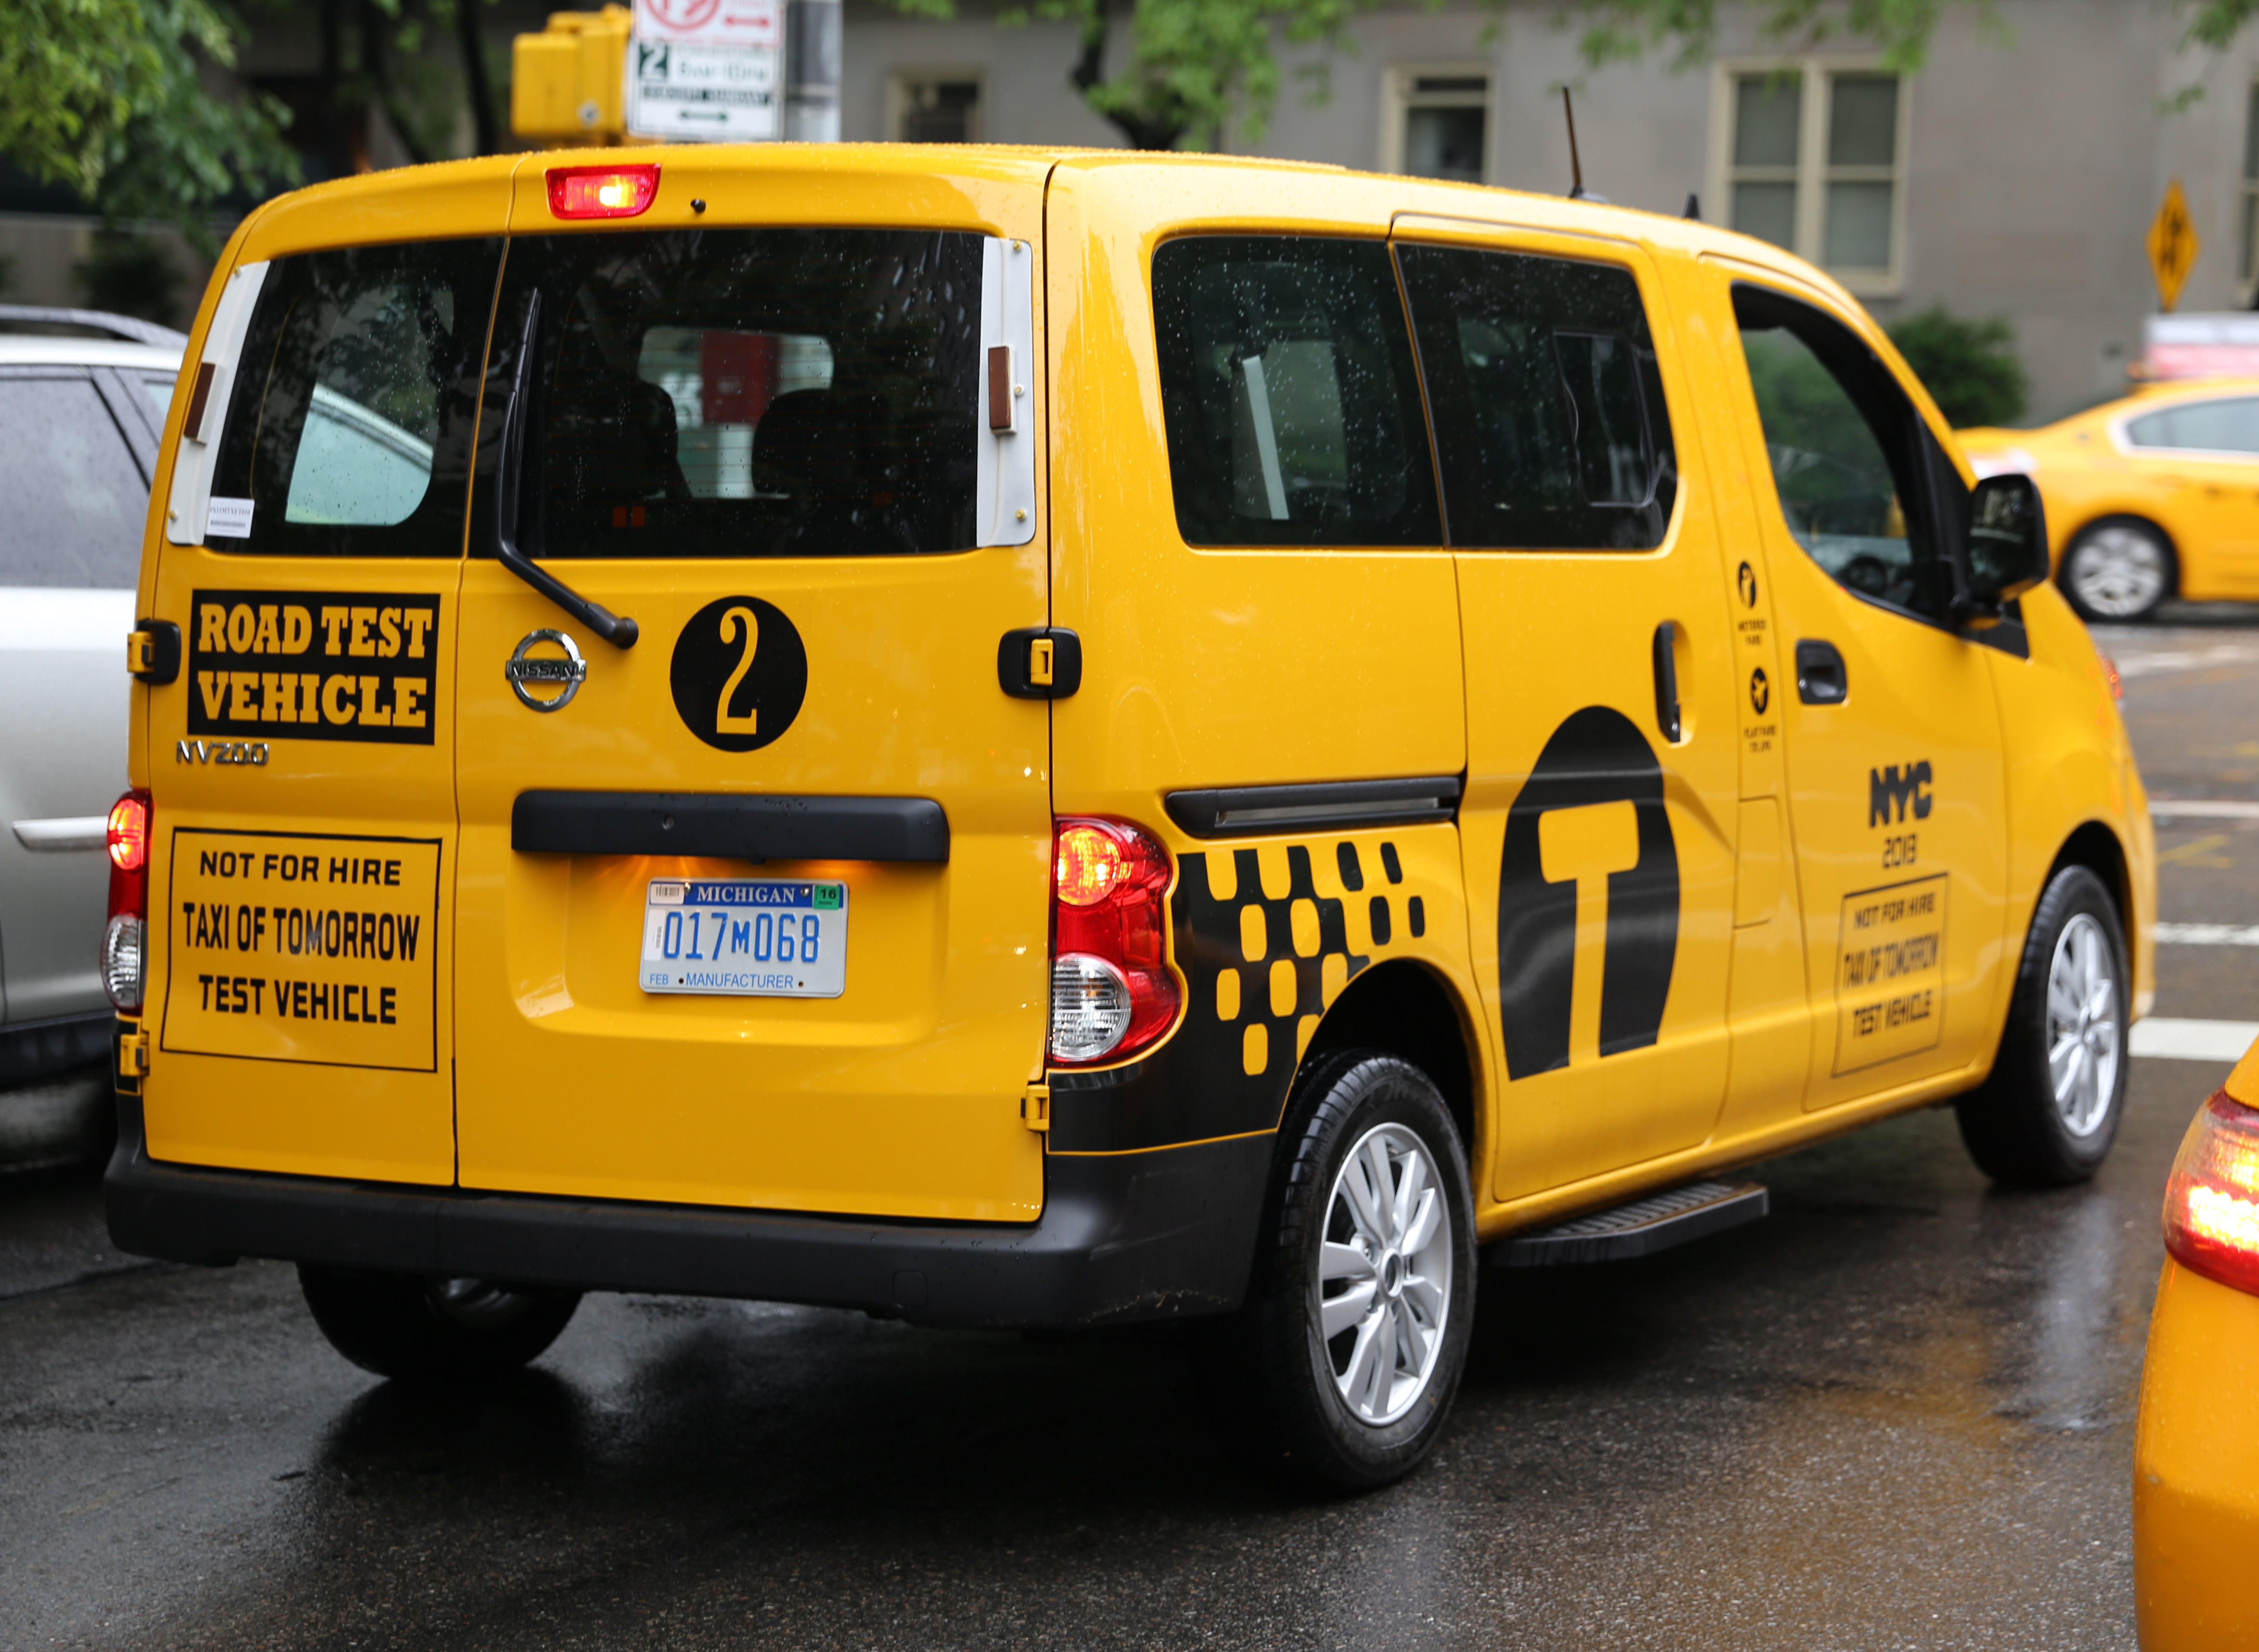 file nissan nv200 taxi of tomorrow test vehicle rear jpg wikimedia commons. Black Bedroom Furniture Sets. Home Design Ideas